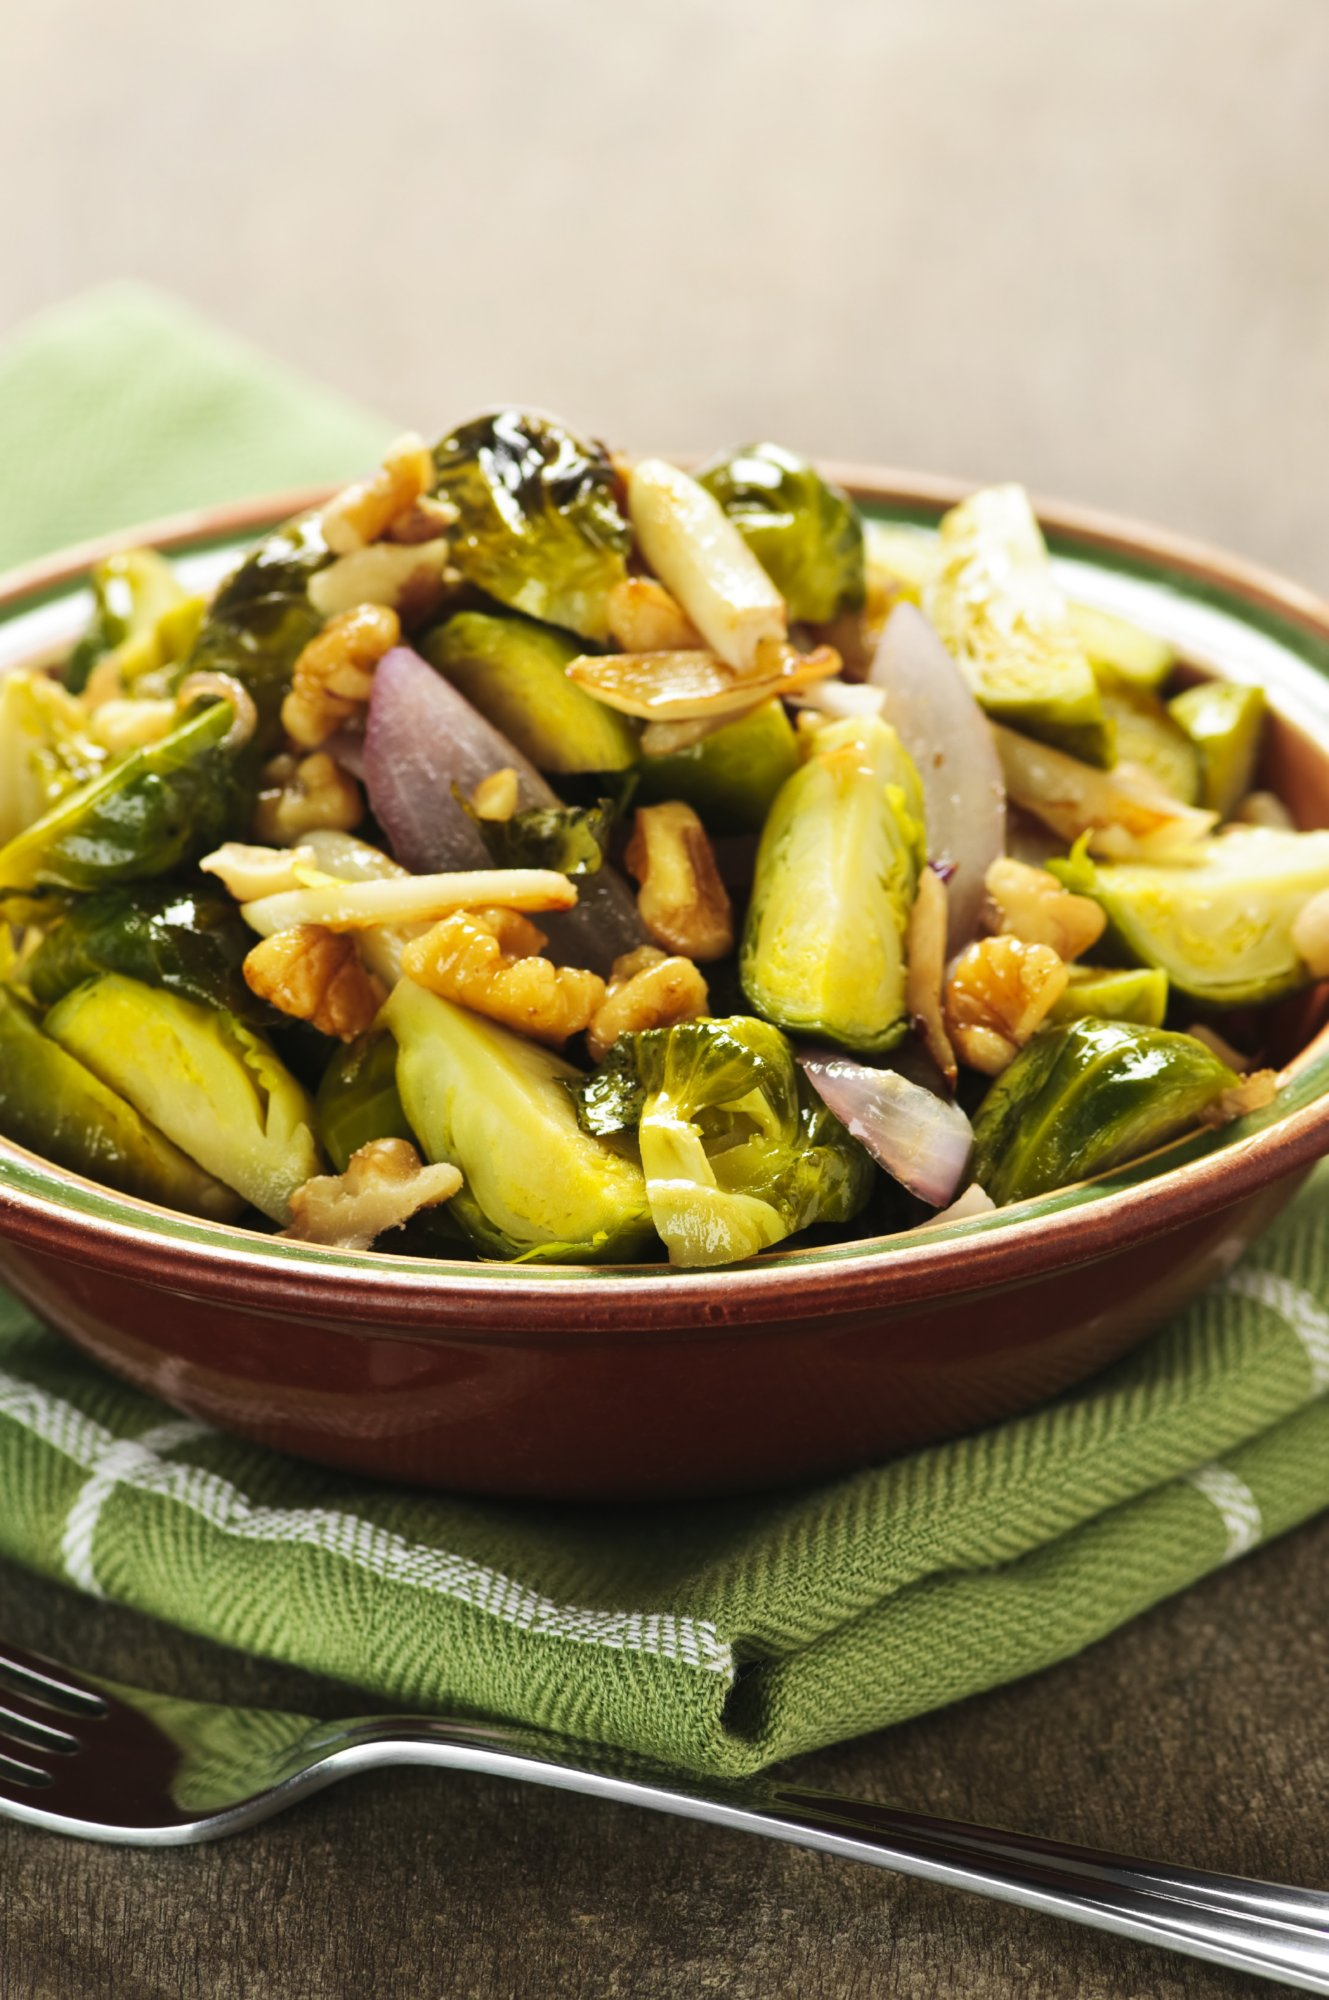 sauteed_brussels_sprouts_with_shallots_and_walnuts